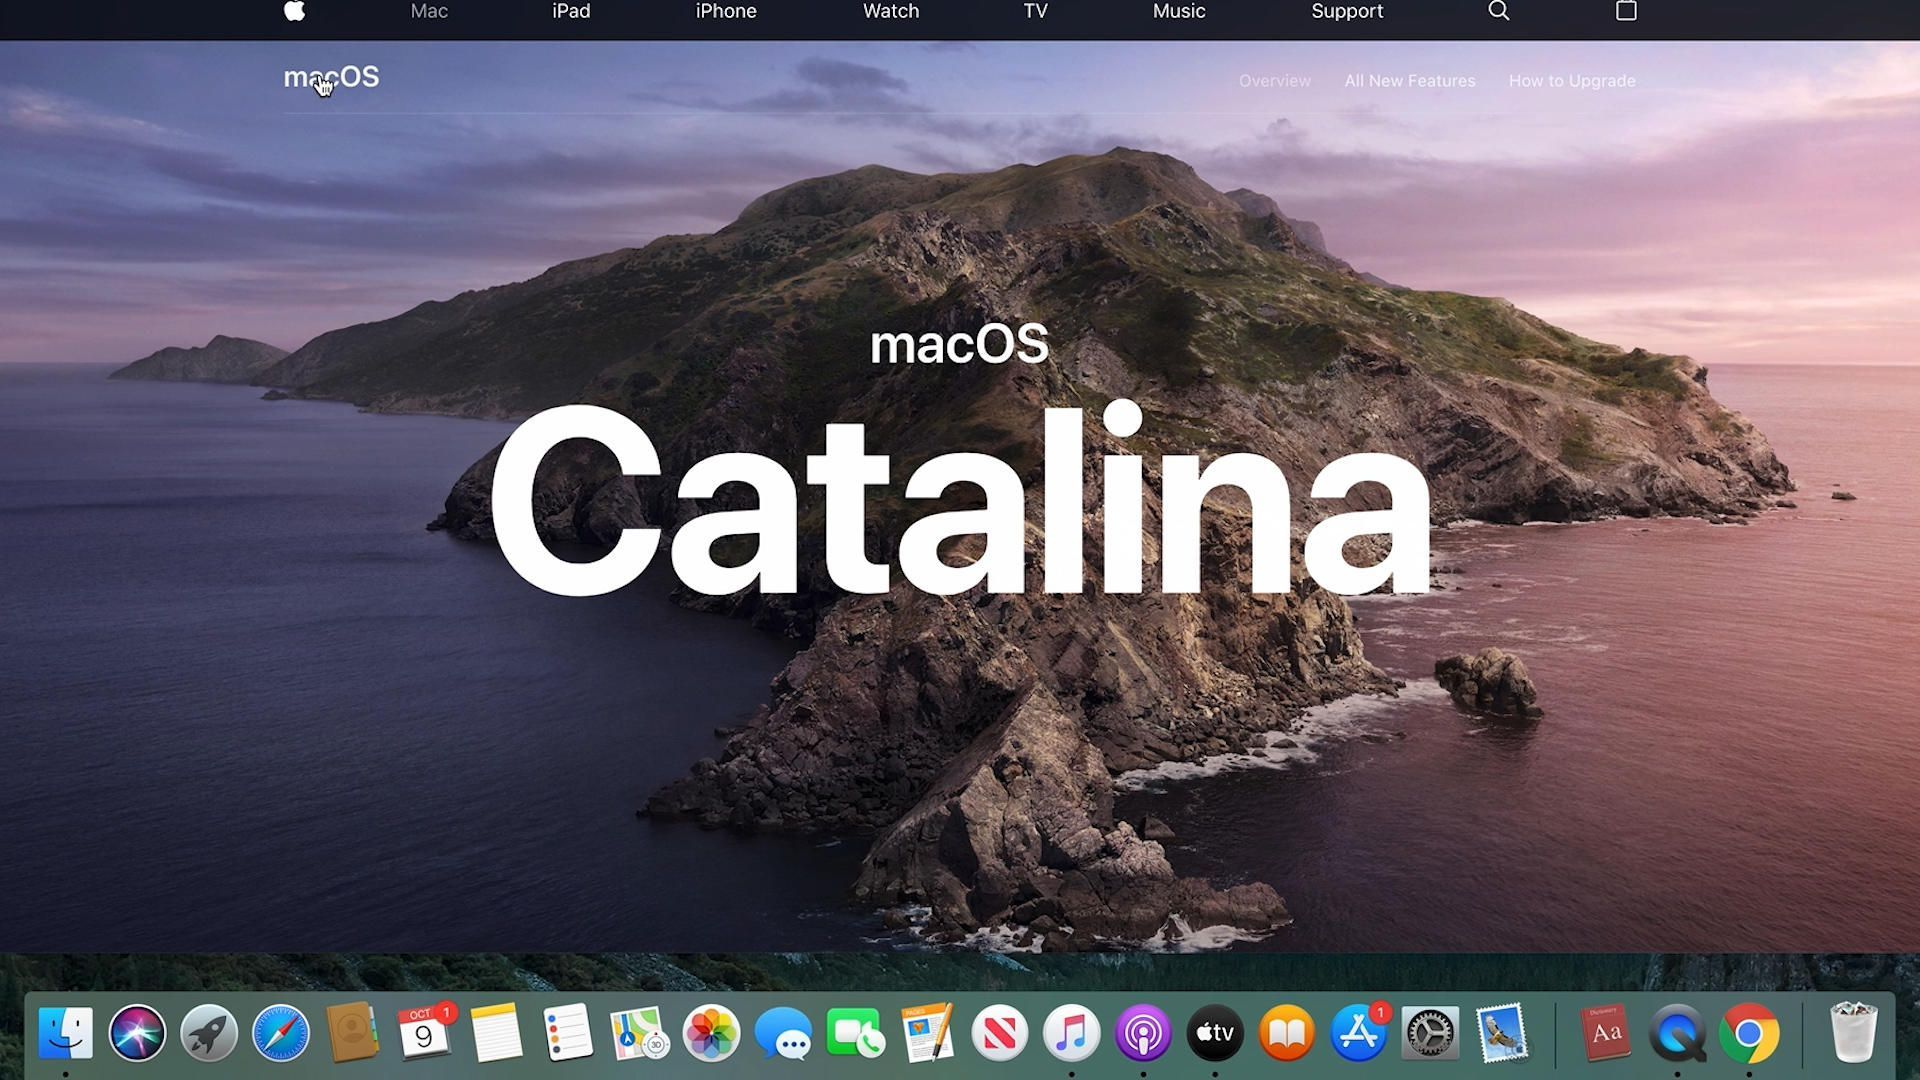 This Year S Annual Mac Update Keeps Things Interesting With A Renewed Focus On Services Catalina Apple Mac Mac